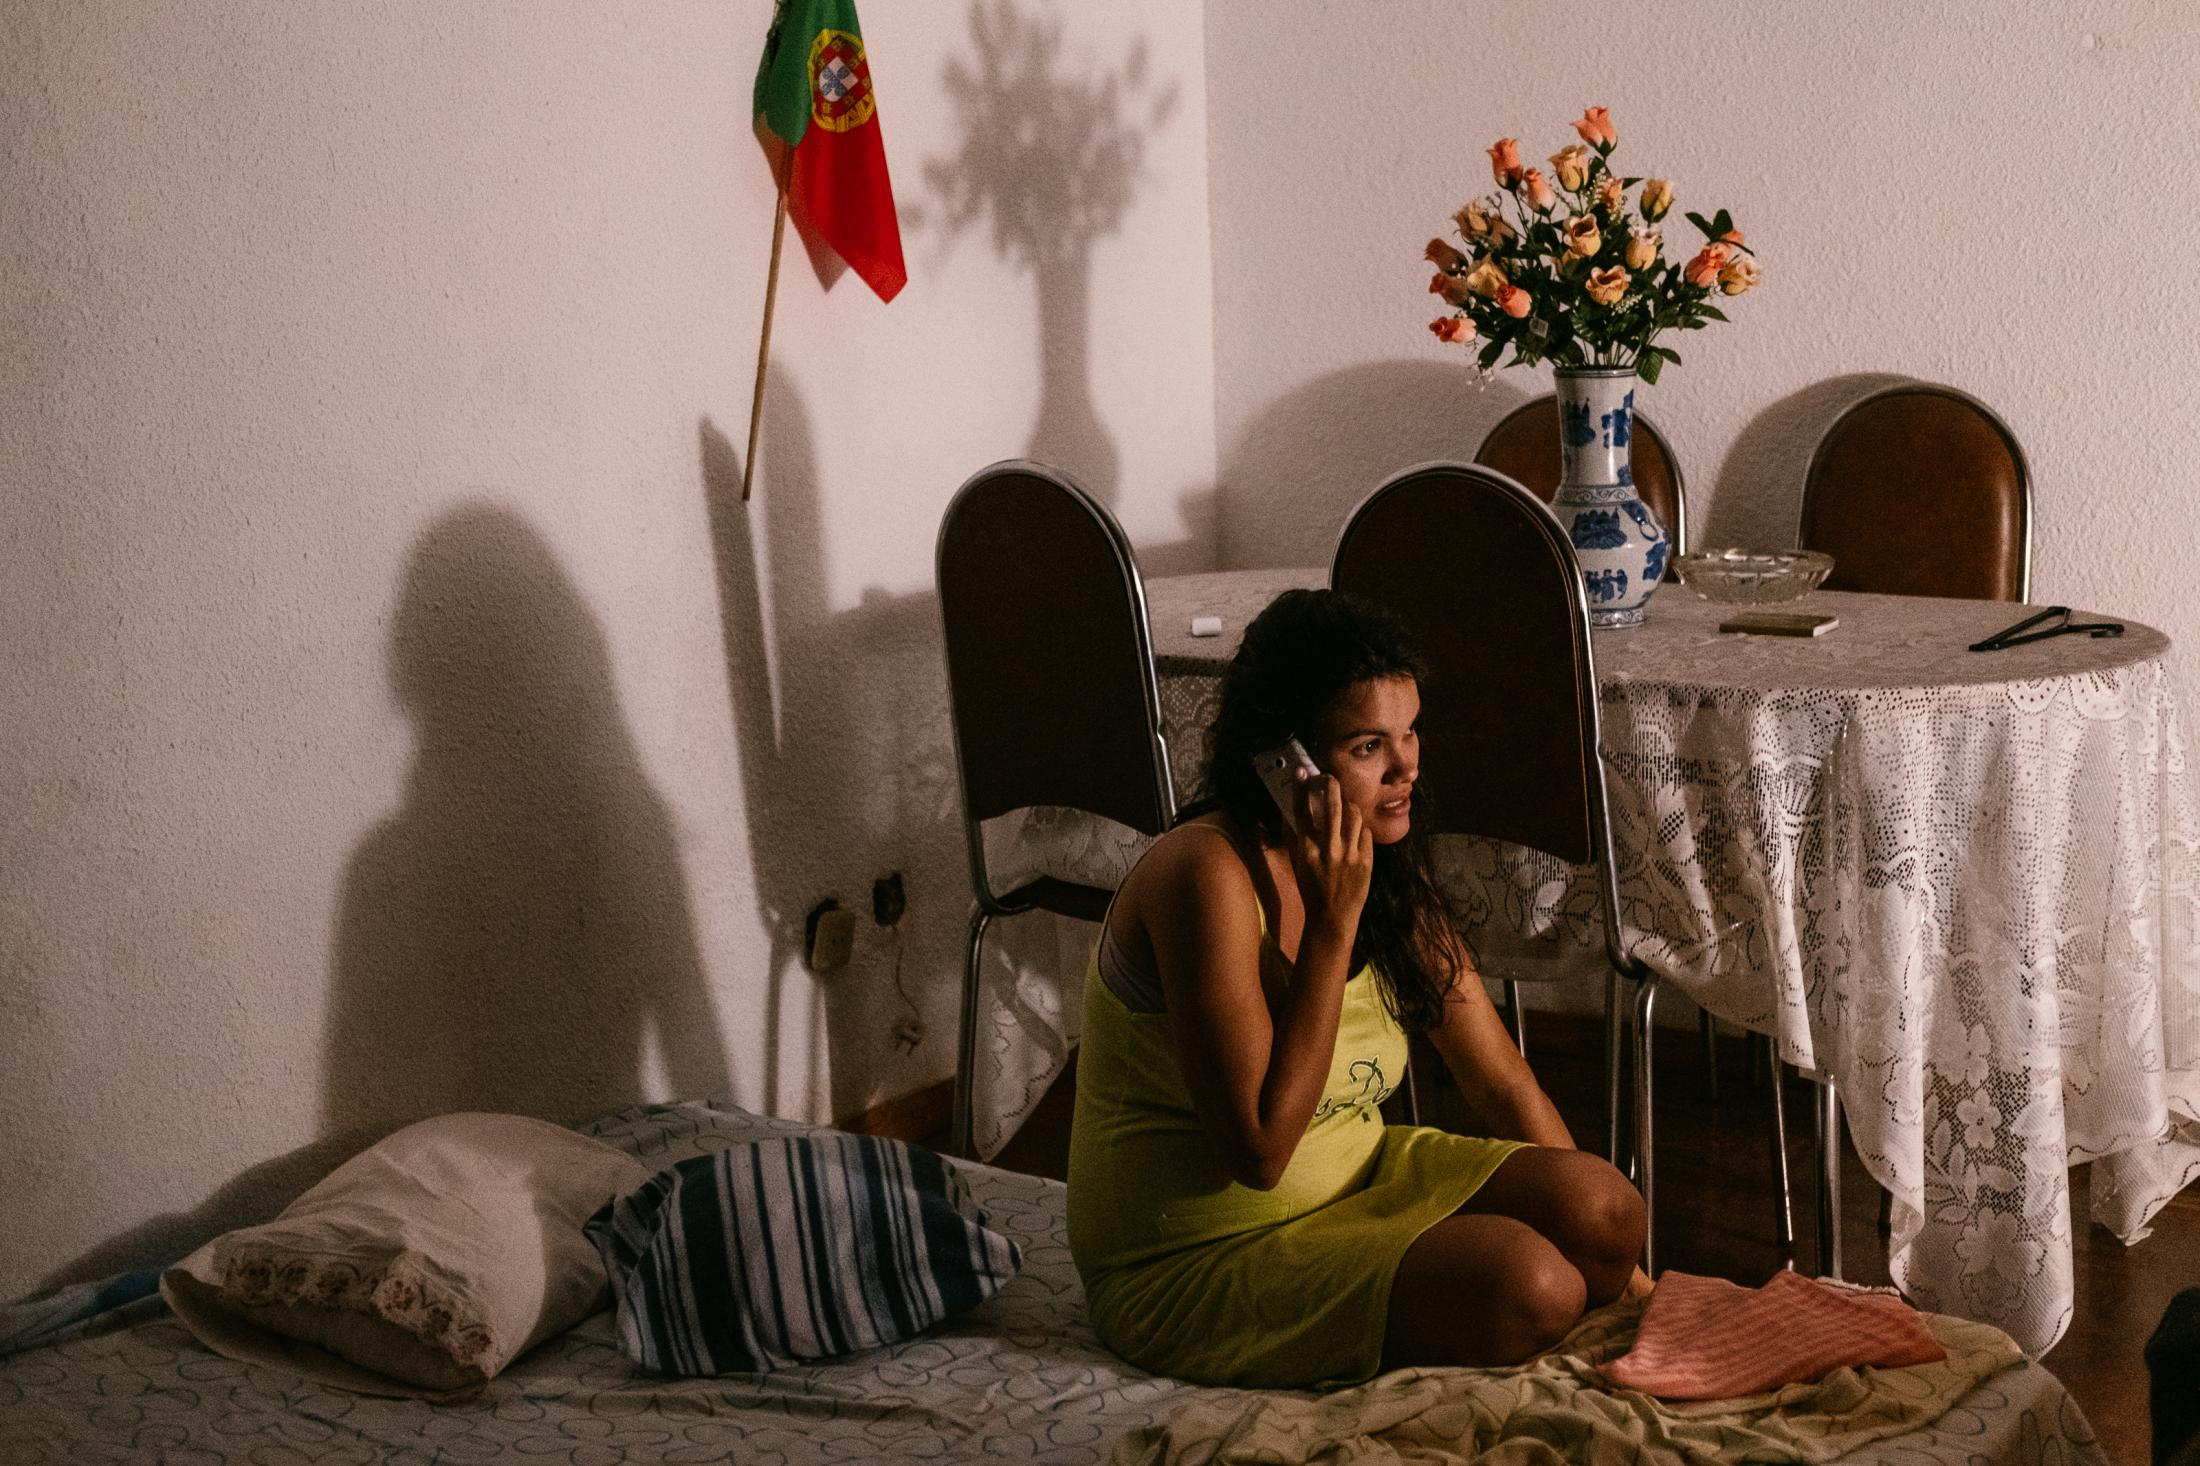 Carla Aguiar (28) sits pregnant, at her mattress in the lIving room at her parents home in Camacha. She is on the phone with Josué Artiaga (36), her husband, who, at that time, was still in Venezuela. Camacha, Madeira, Portugal. 16th August 2018. At the time the family was trying to save money to move Josué to Portugal on time before their baby ́s birth.